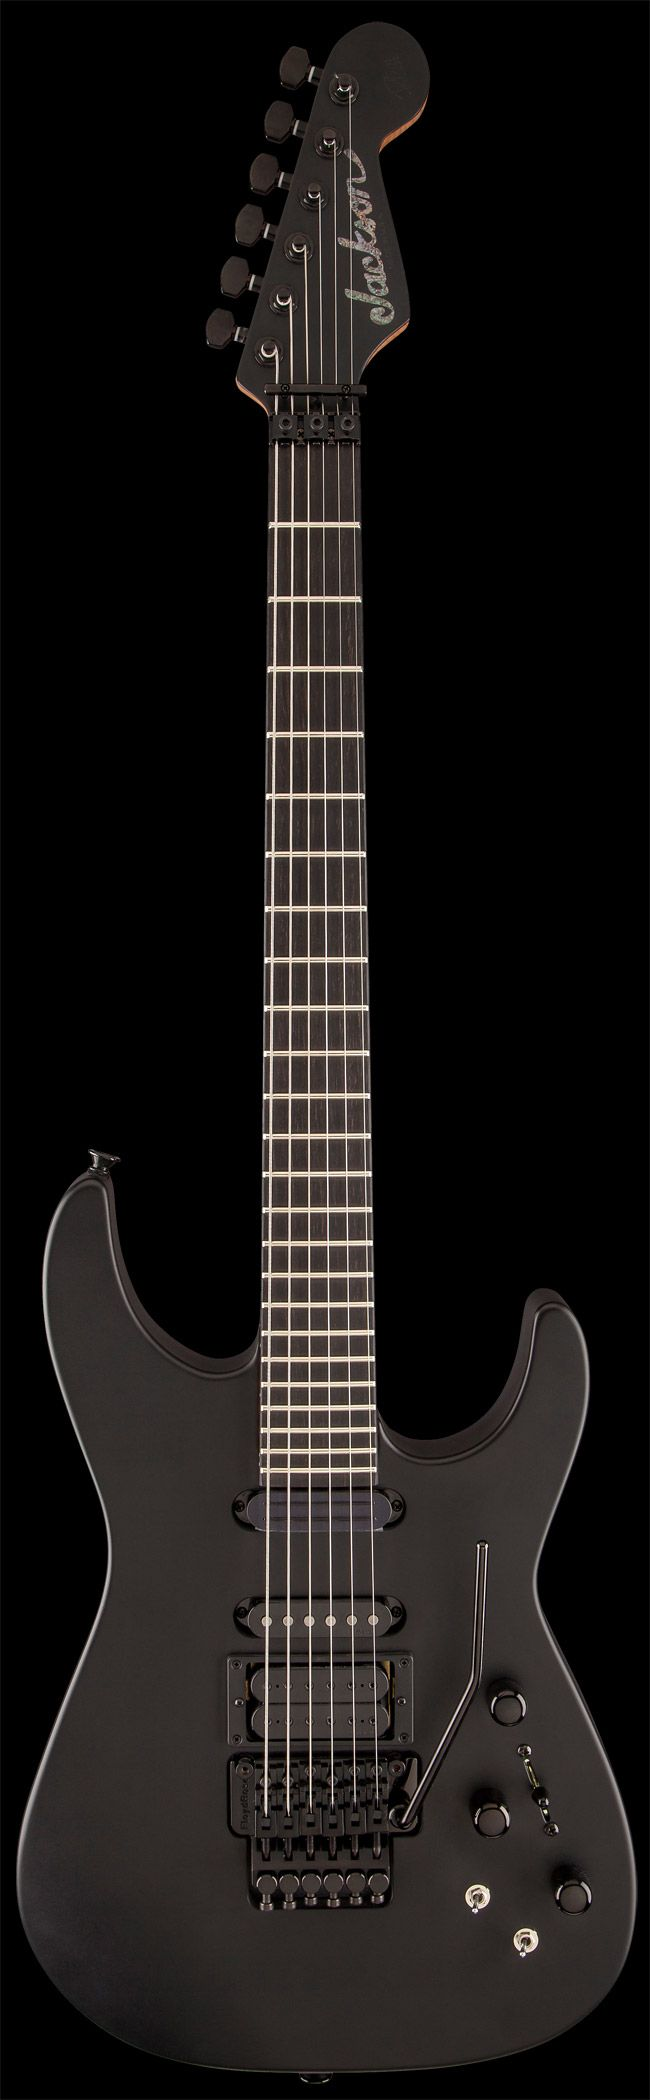 895 best images about electric guitars on pinterest electric guitars musical instruments and. Black Bedroom Furniture Sets. Home Design Ideas